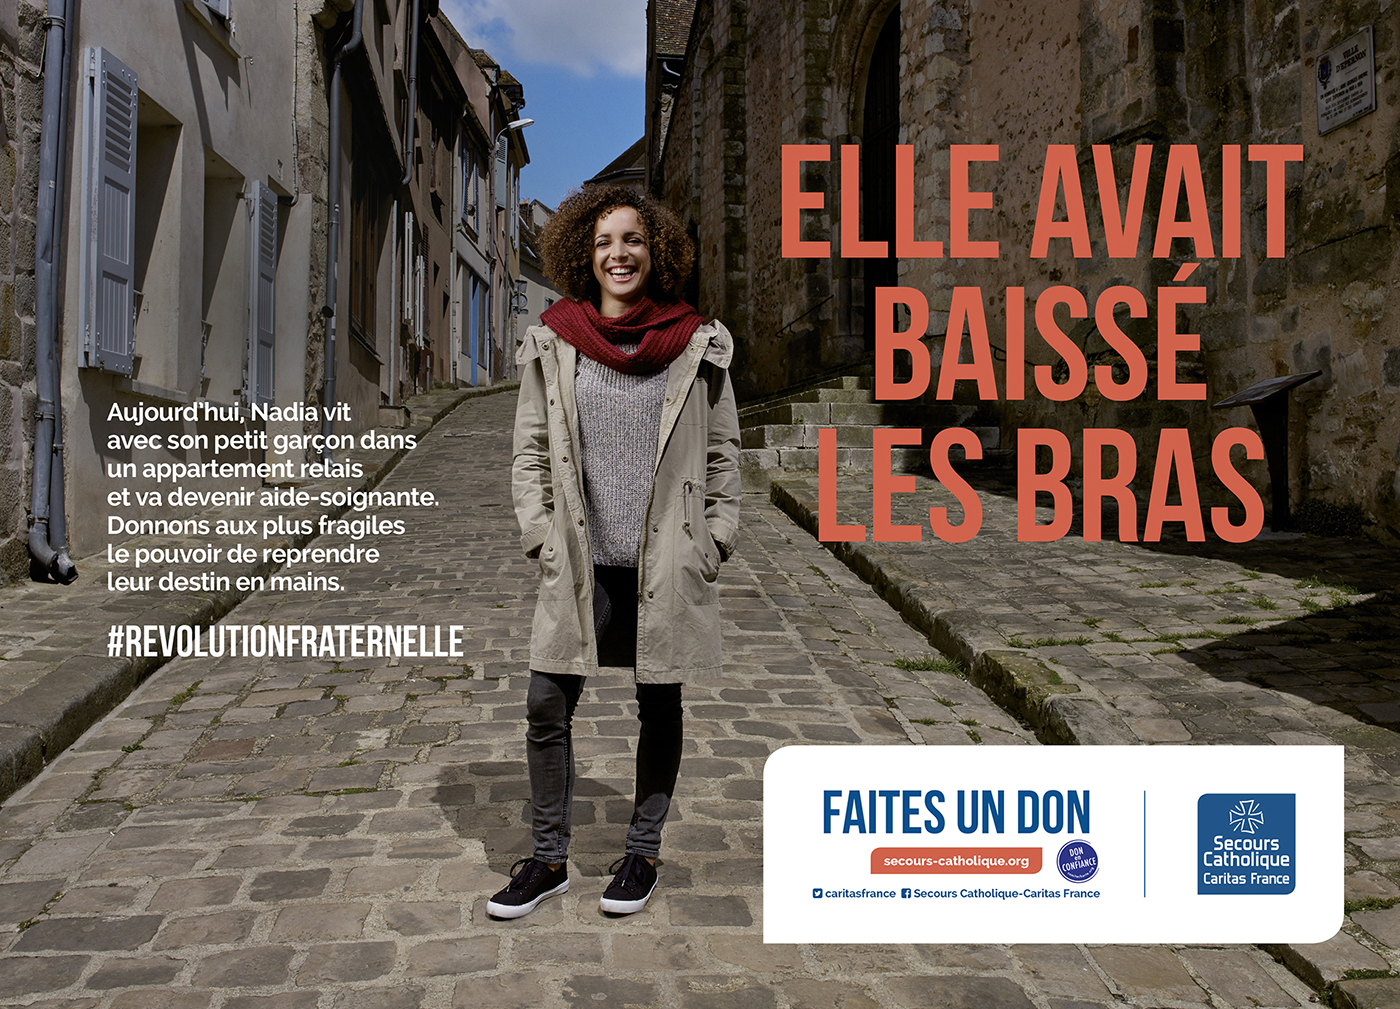 Thibault Stipal - Photographe - CAMPAGNE NATIONALE SECOURS CATHOLIQUE  - 2